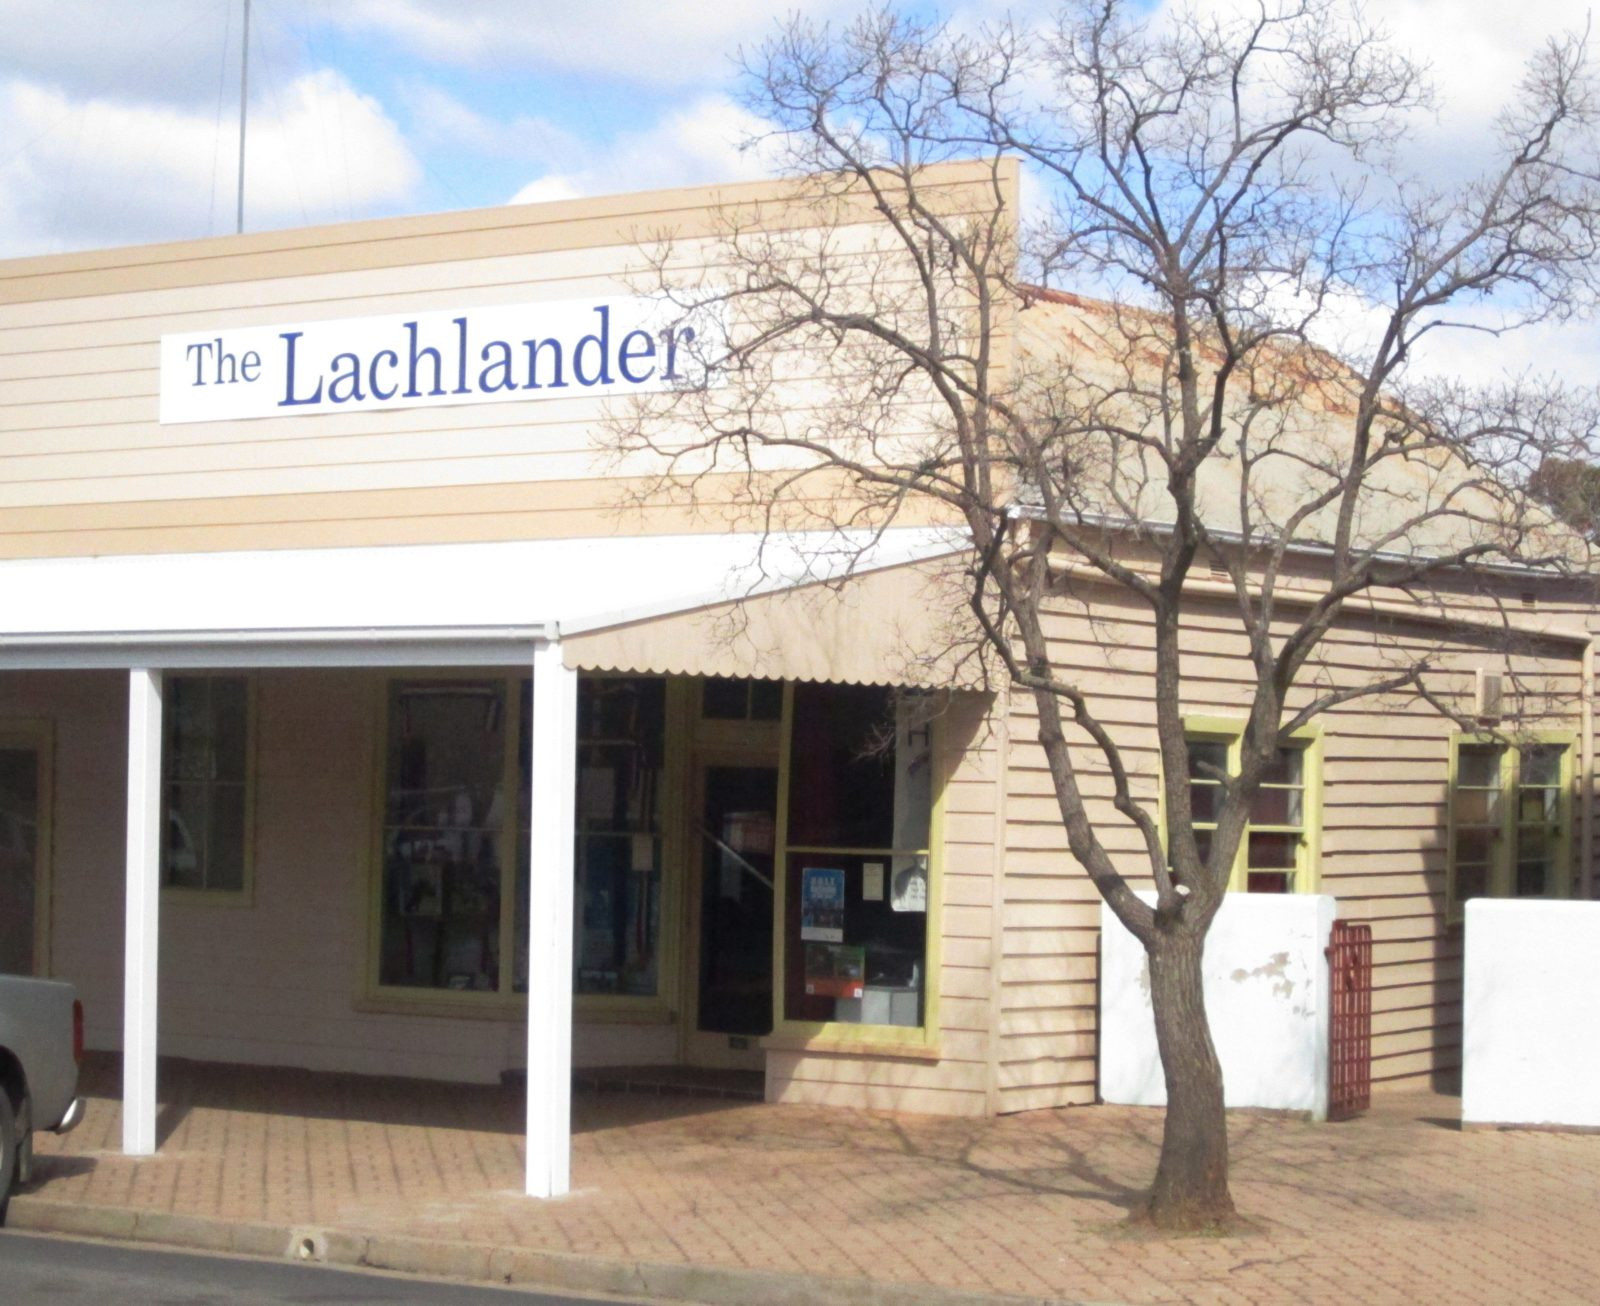 The Lachlander Museum